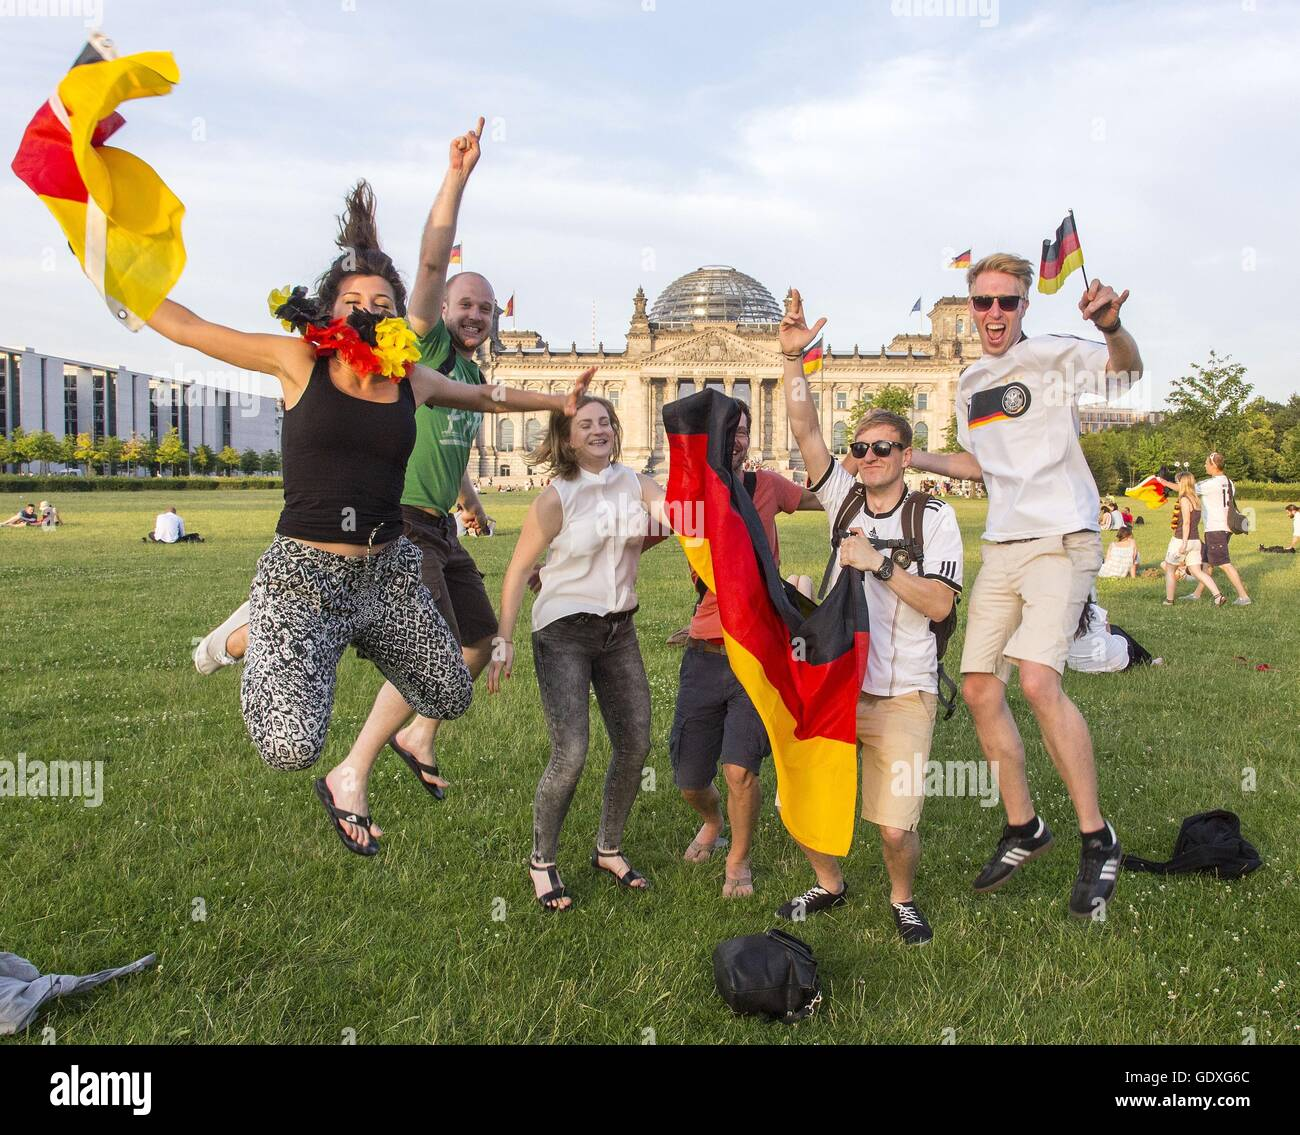 Football World Cup 2014 in Berlin, Germany, 2014 - Stock Image